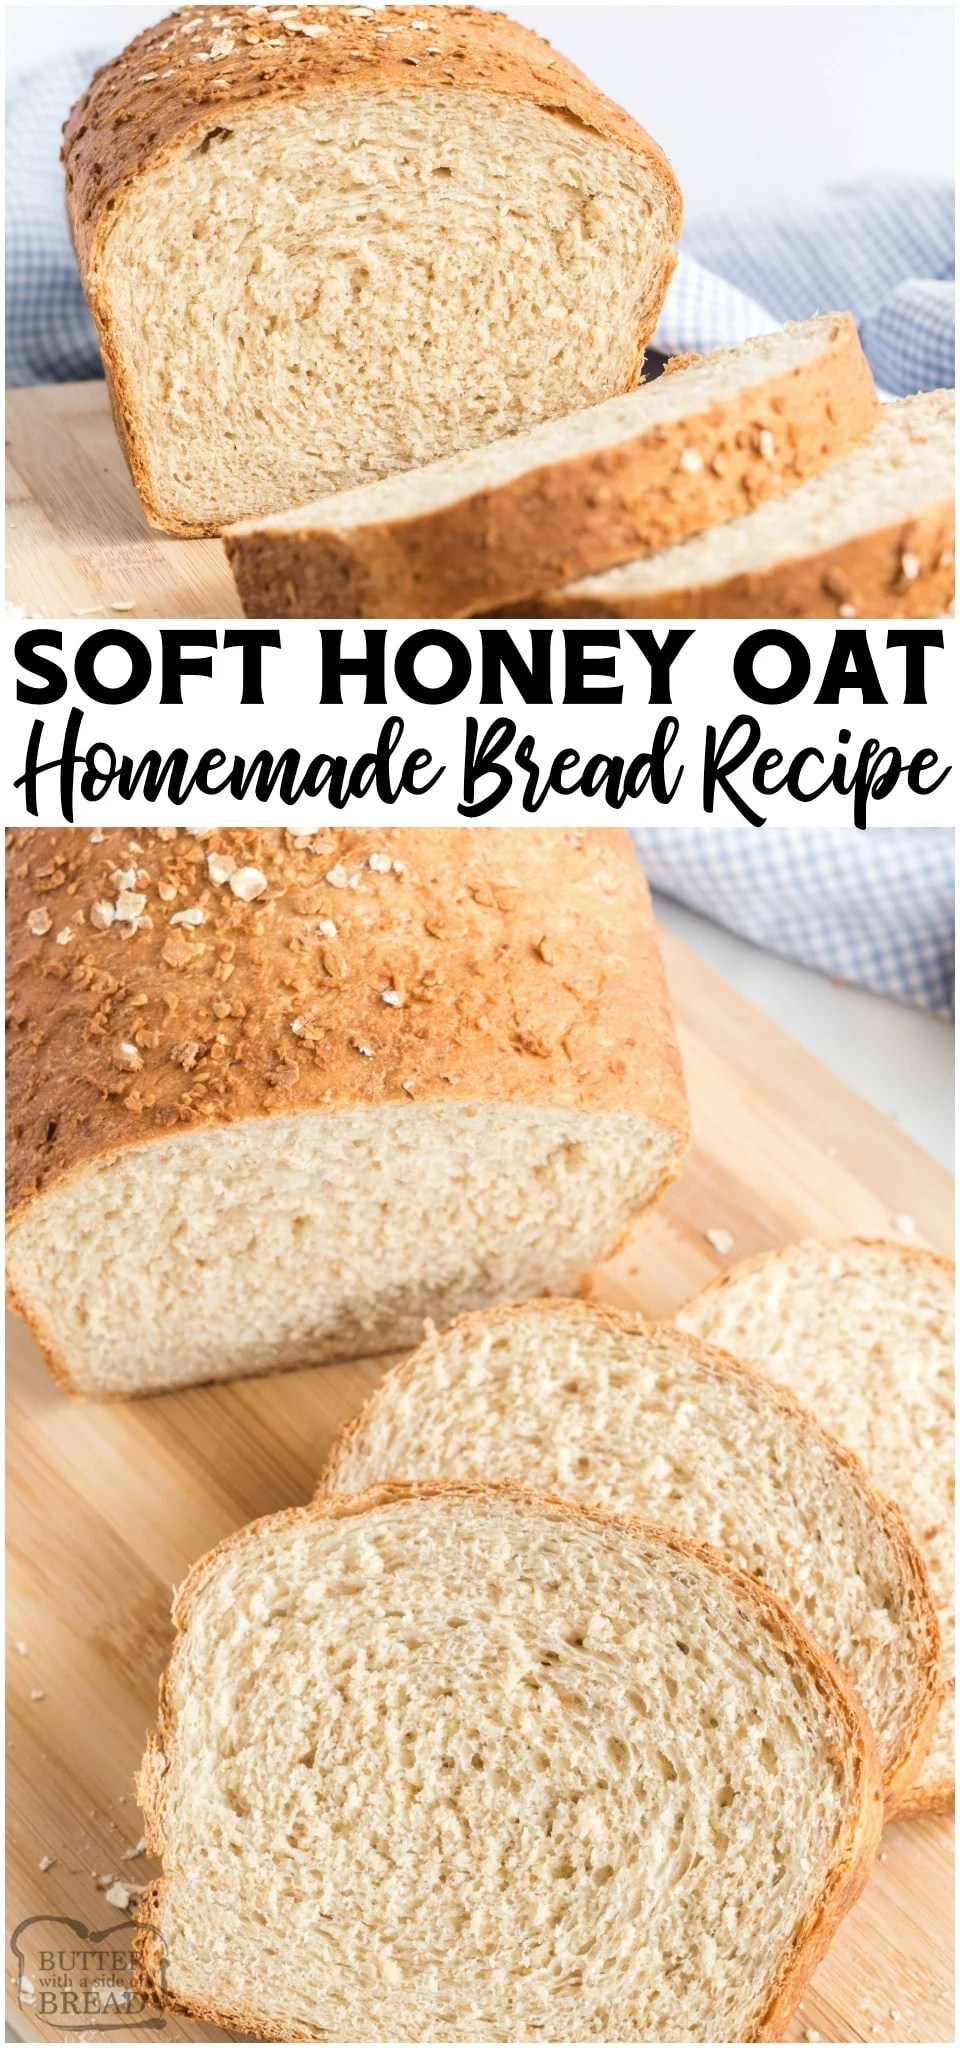 Honey Oat Bread recipe made with part whole wheat flour, honey, milk and oats. It's one of my favorite homemade bread recipes!#bread #homemade #honey #oats #wholewheat #howtomakebread #breadrecipe from BUTTER WITH A SIDE OF BREAD